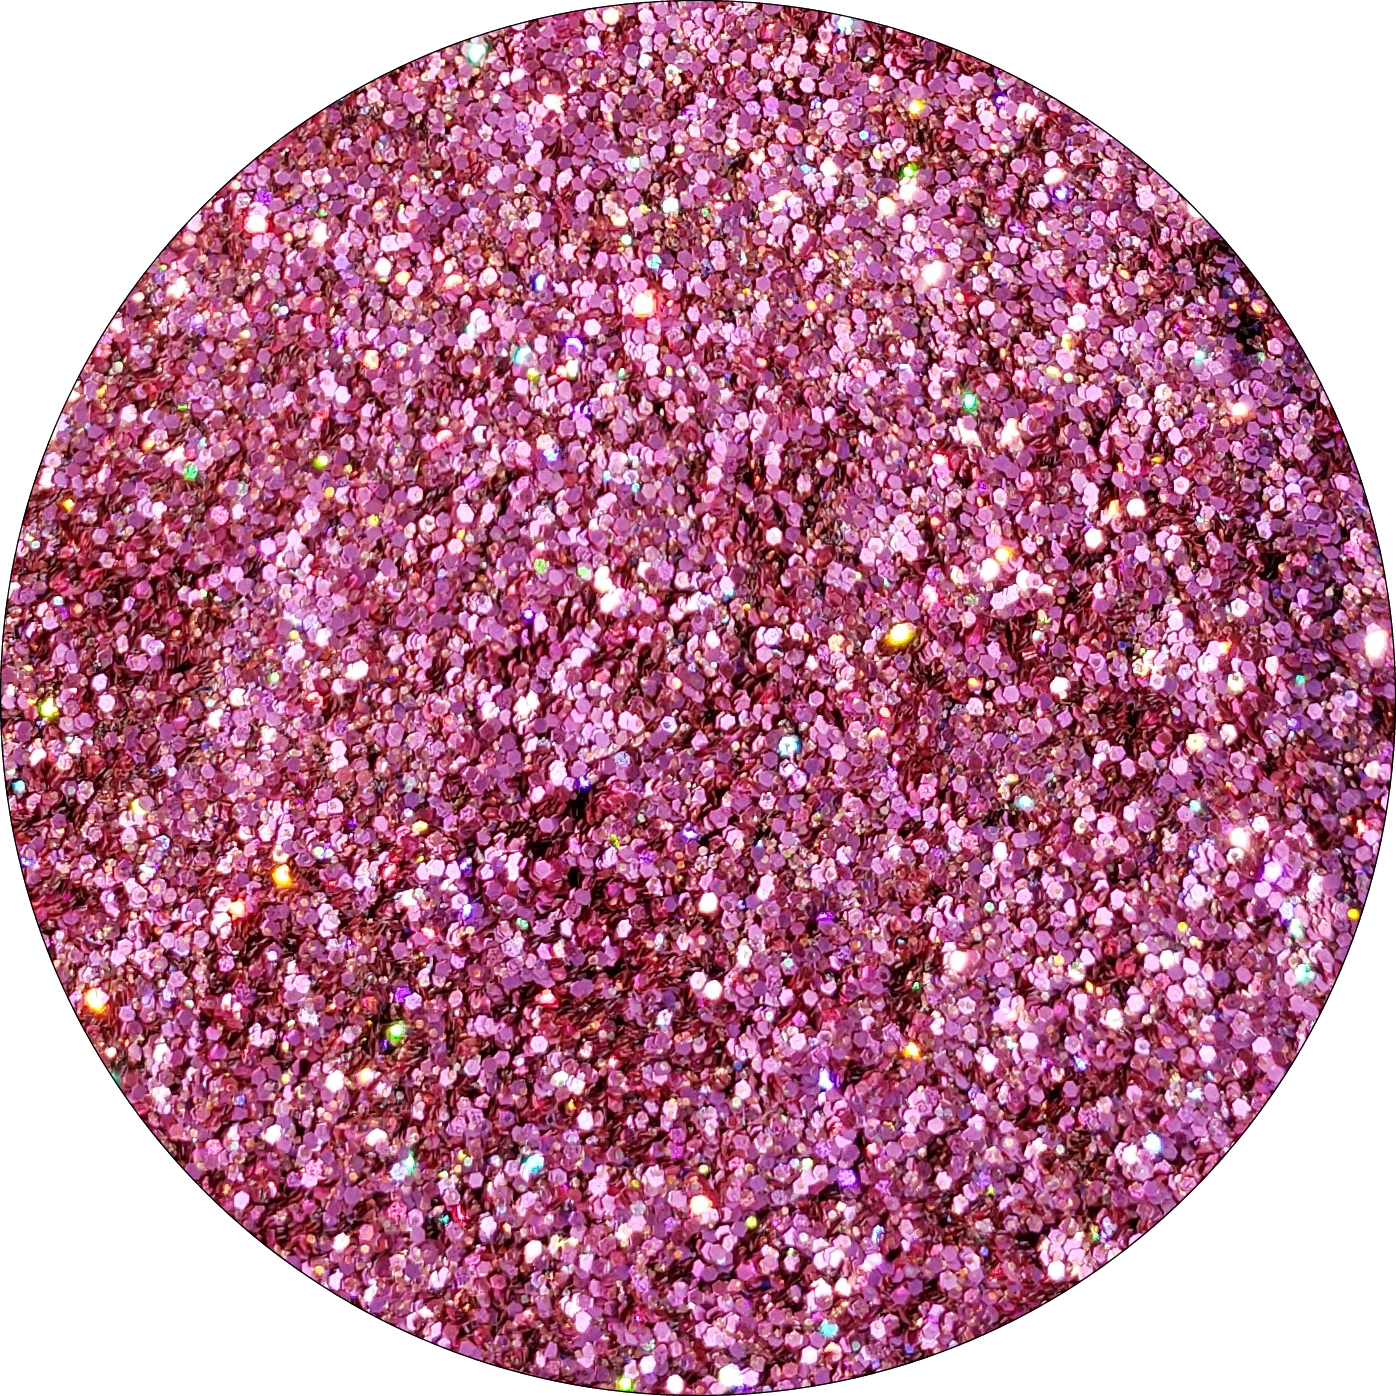 Wild Rose : Twisted Glitter Cosmetic Mix